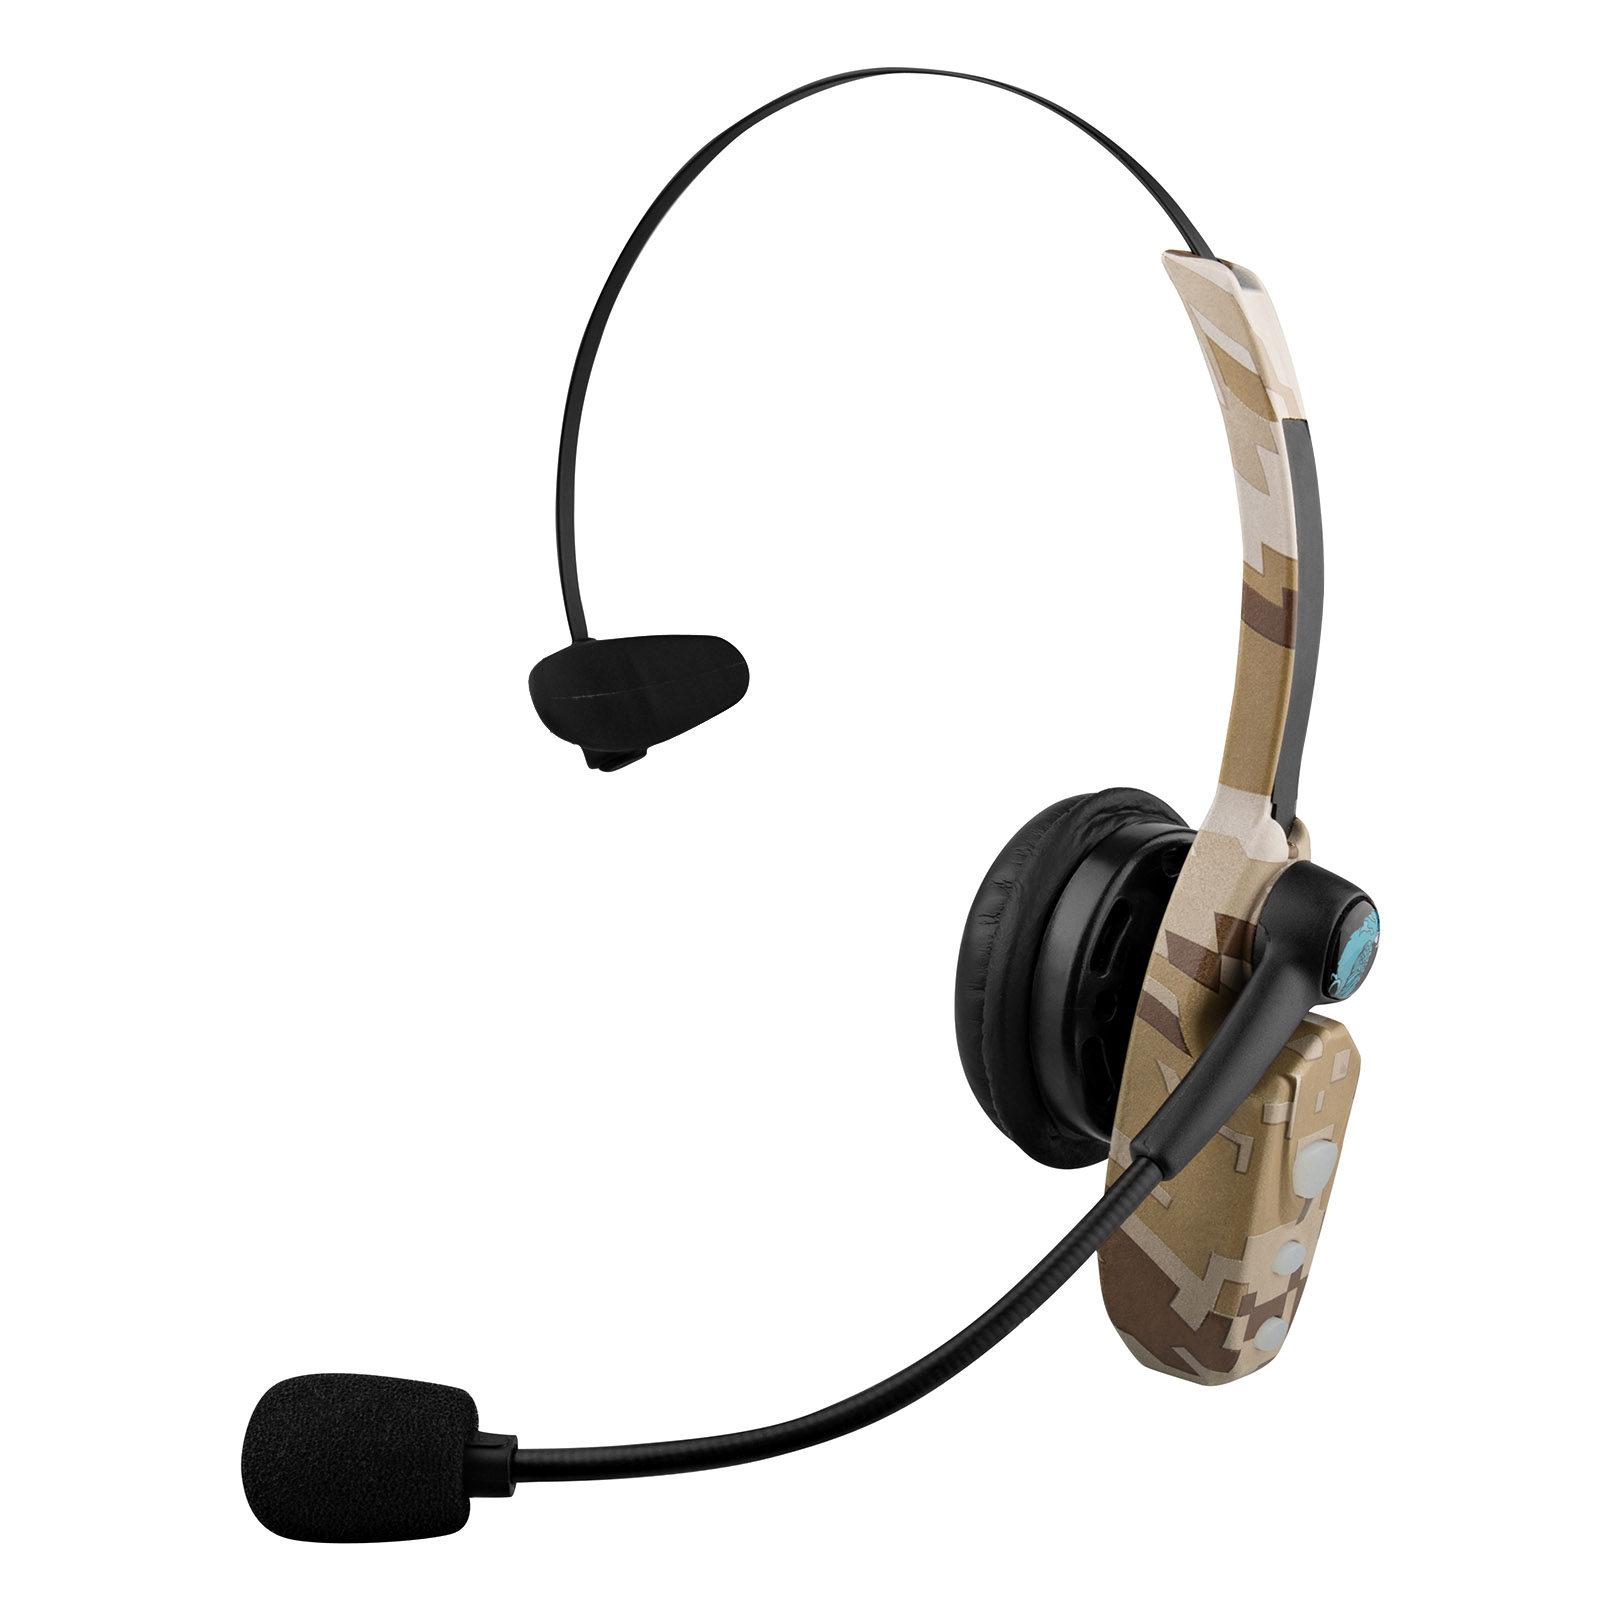 0044818856a VXI BlueParrott B250-XT+ Noise Cancelling Bluetooth Headset Wounded Warrior  Edition (Camo) (Refurbished) - Walmart.com